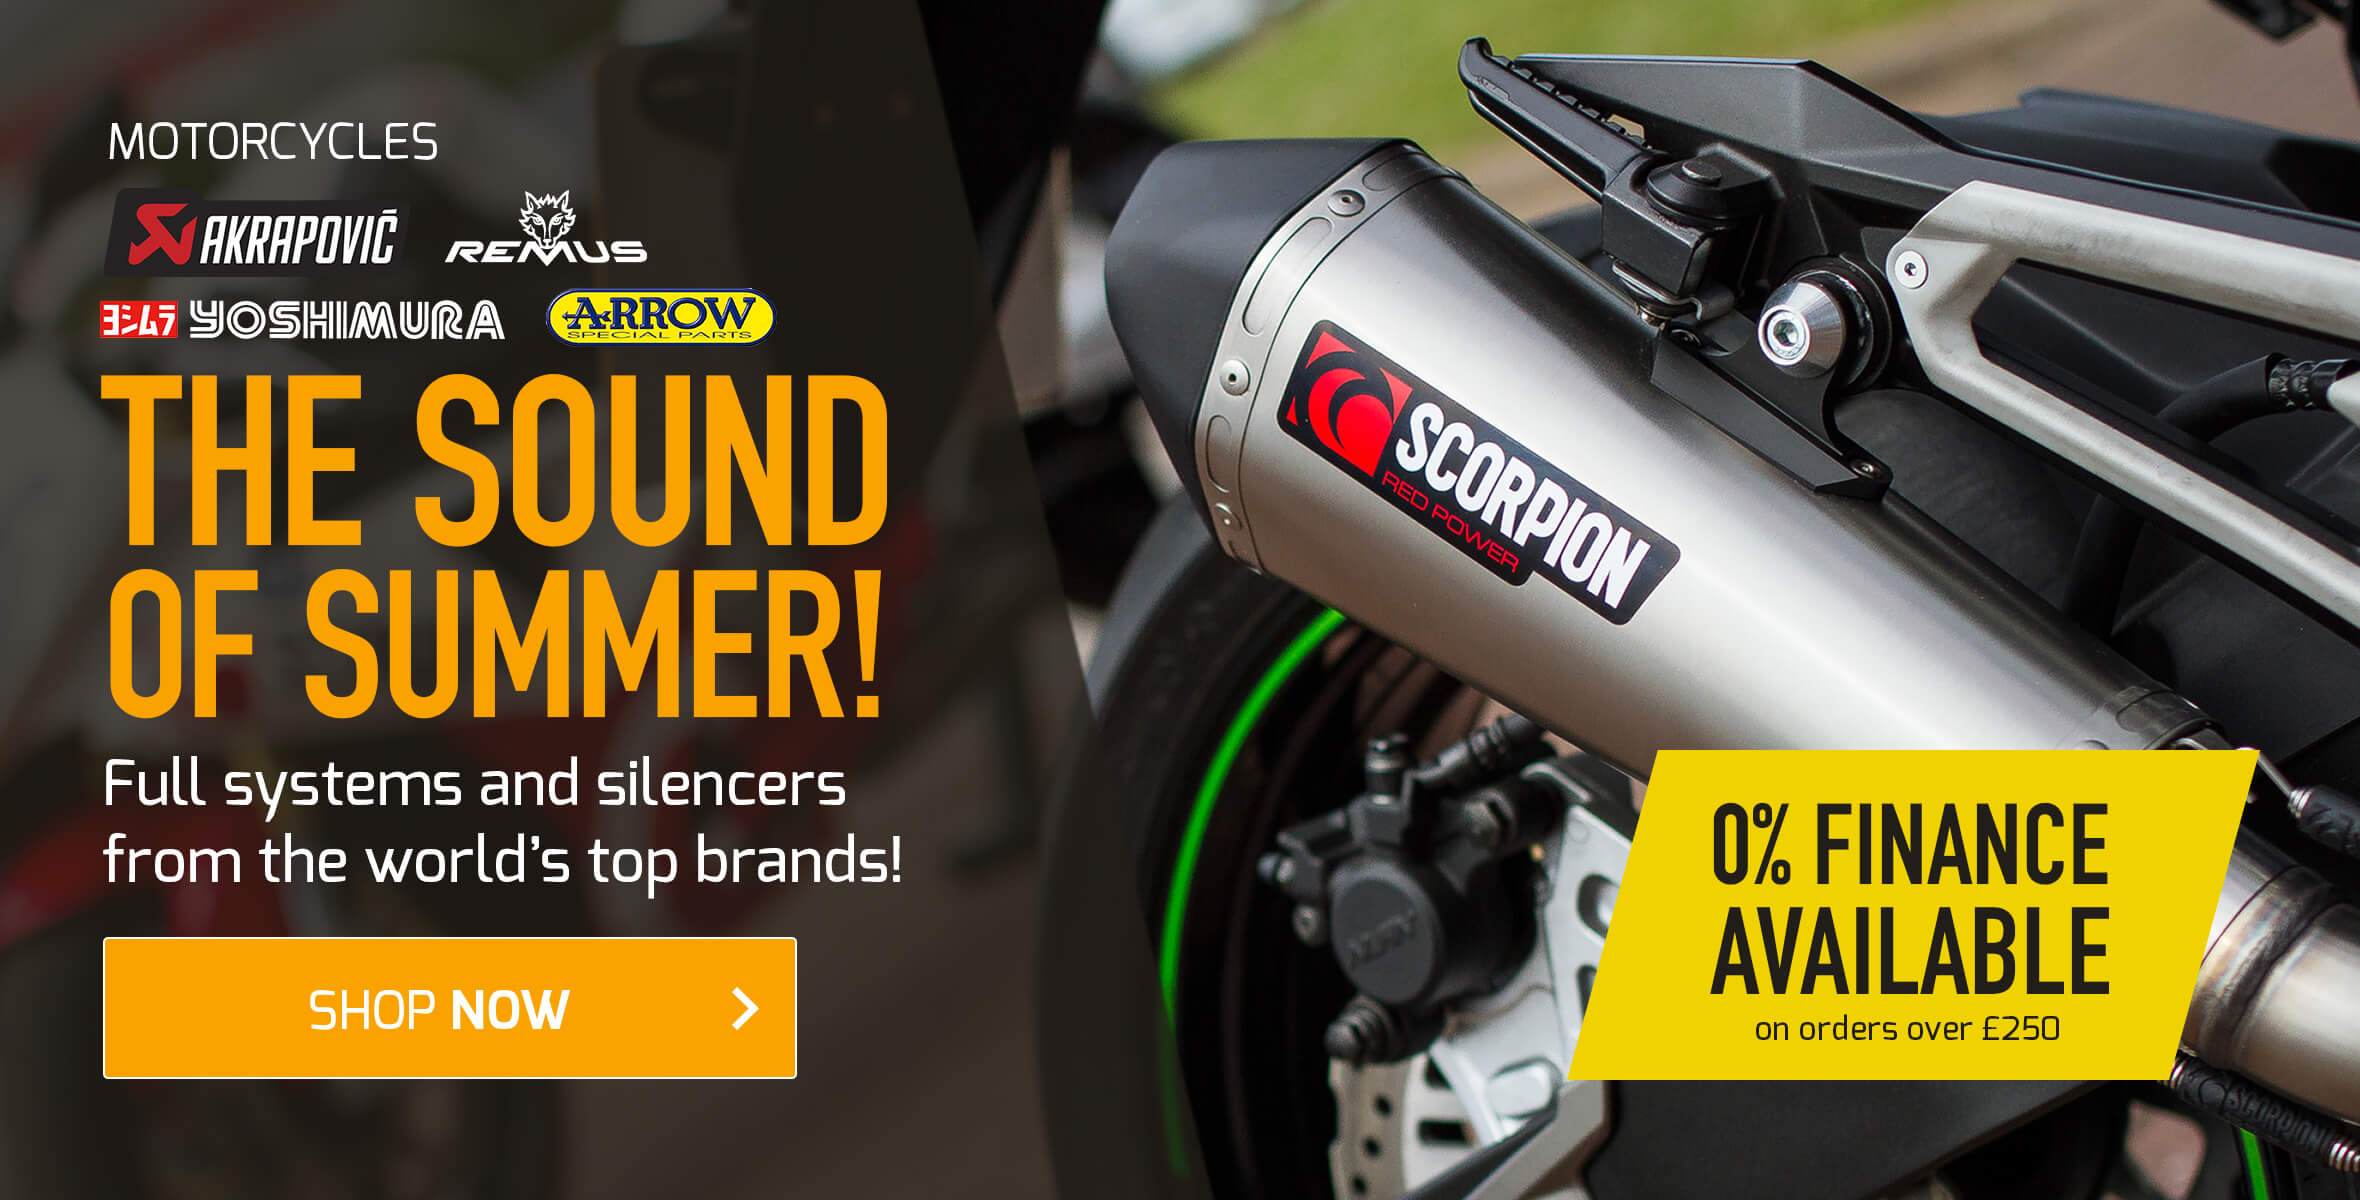 The Sound of Summer - Full Systems and Silencers from Top Brands